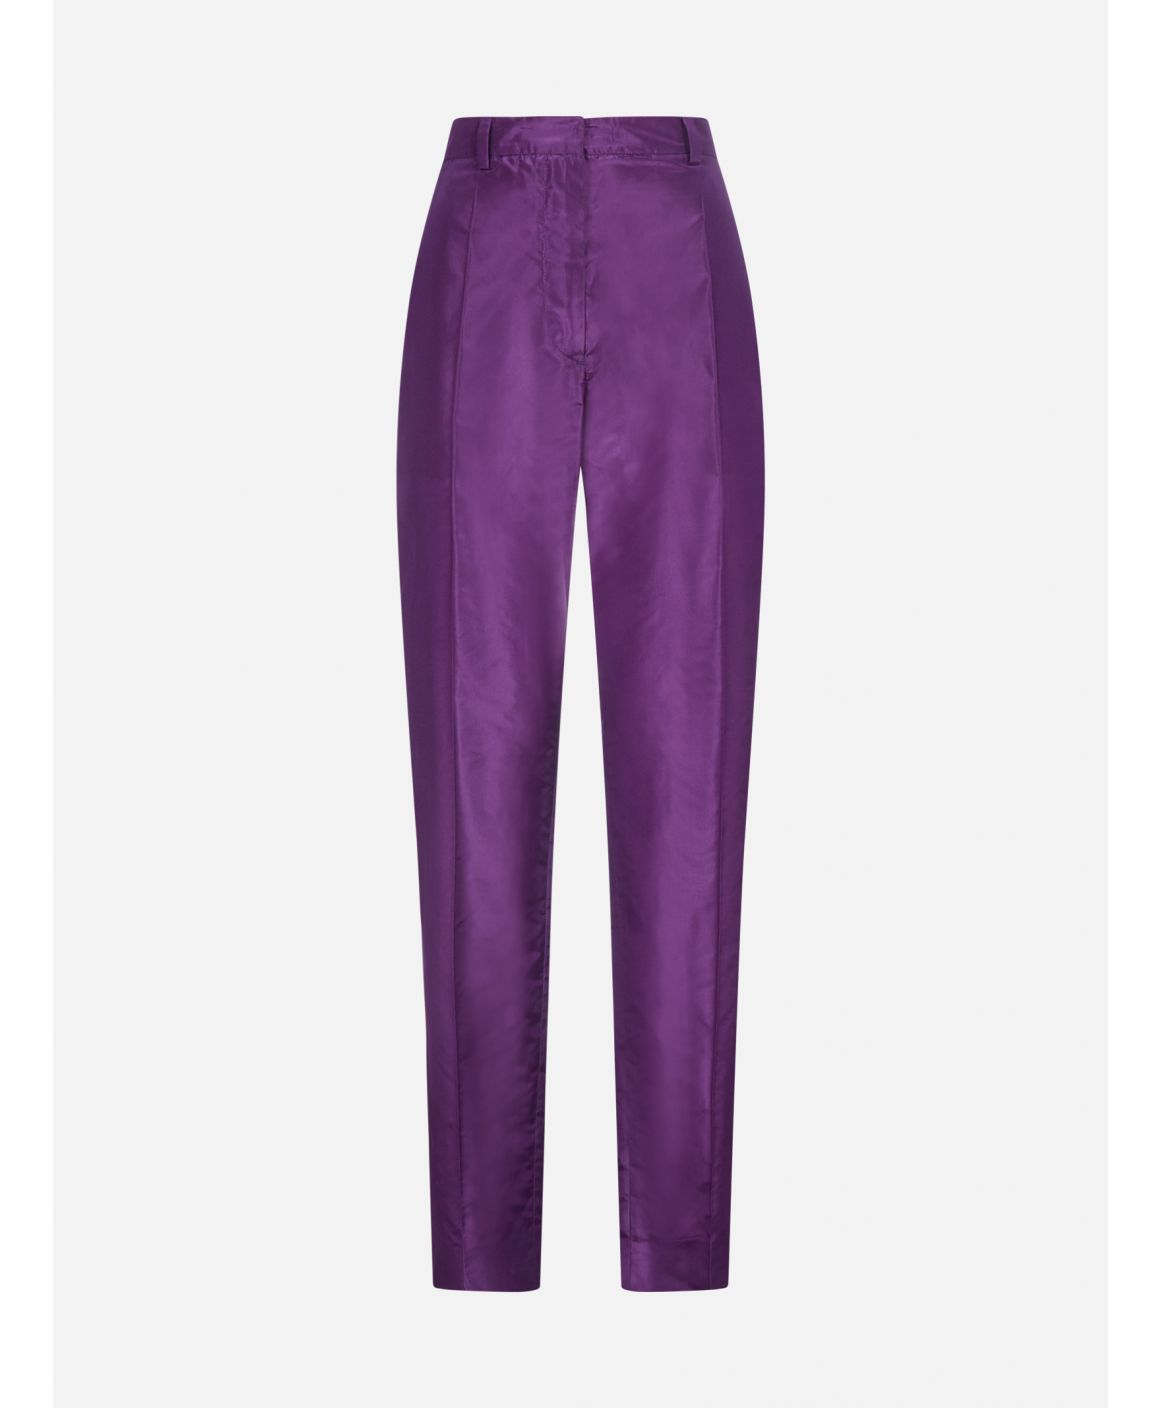 Silk trousers